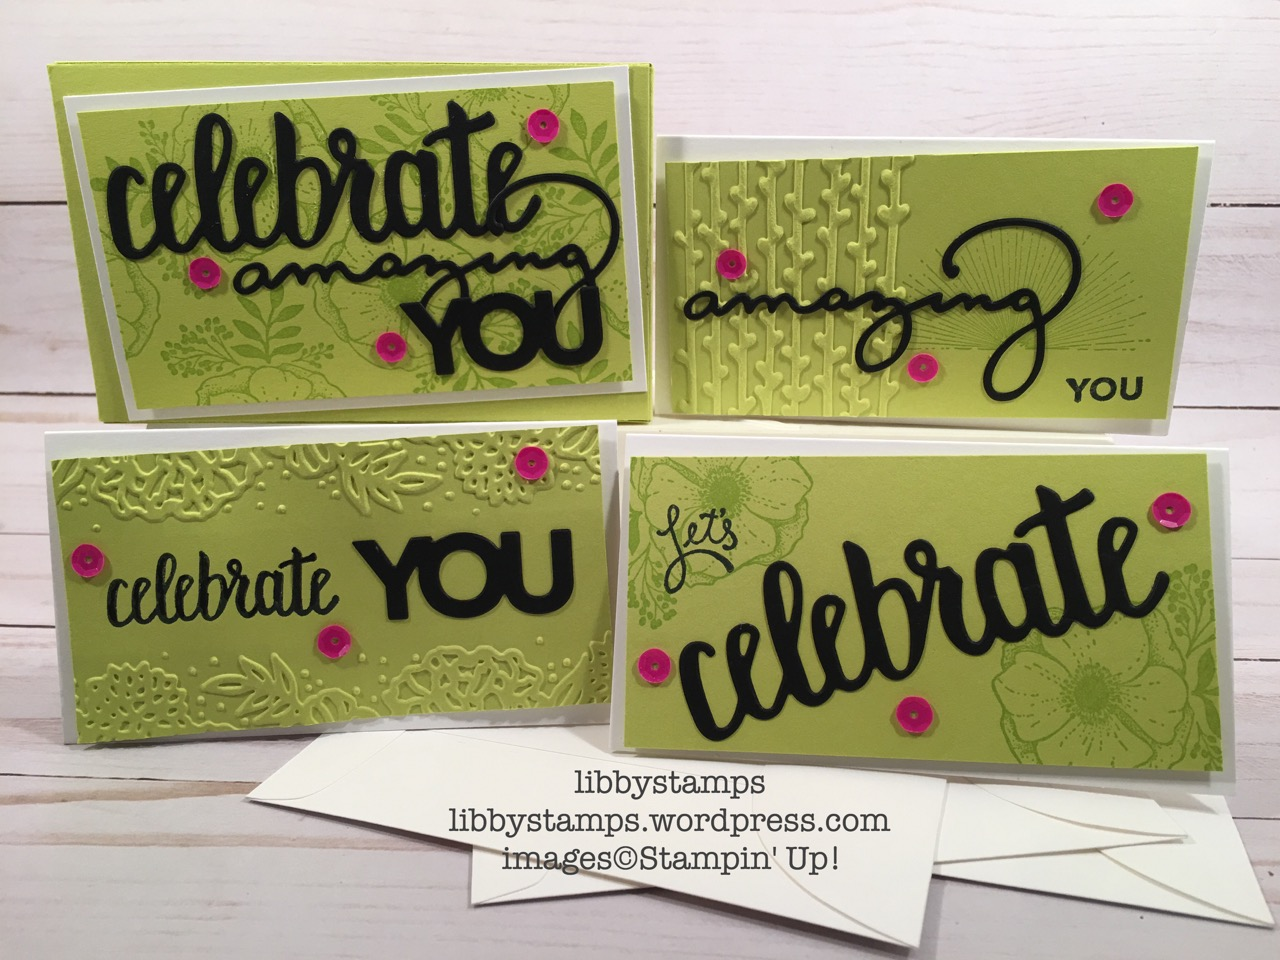 libbystamps, stampin up, CCMC, Amazing You, Celebrate You Thinlits, Lots to Love Box Framelits, Petal Pair EF, Tutti-frutti Adhesive Backed Sequins, Whisper White Narrow Note Cards & Envelopes,